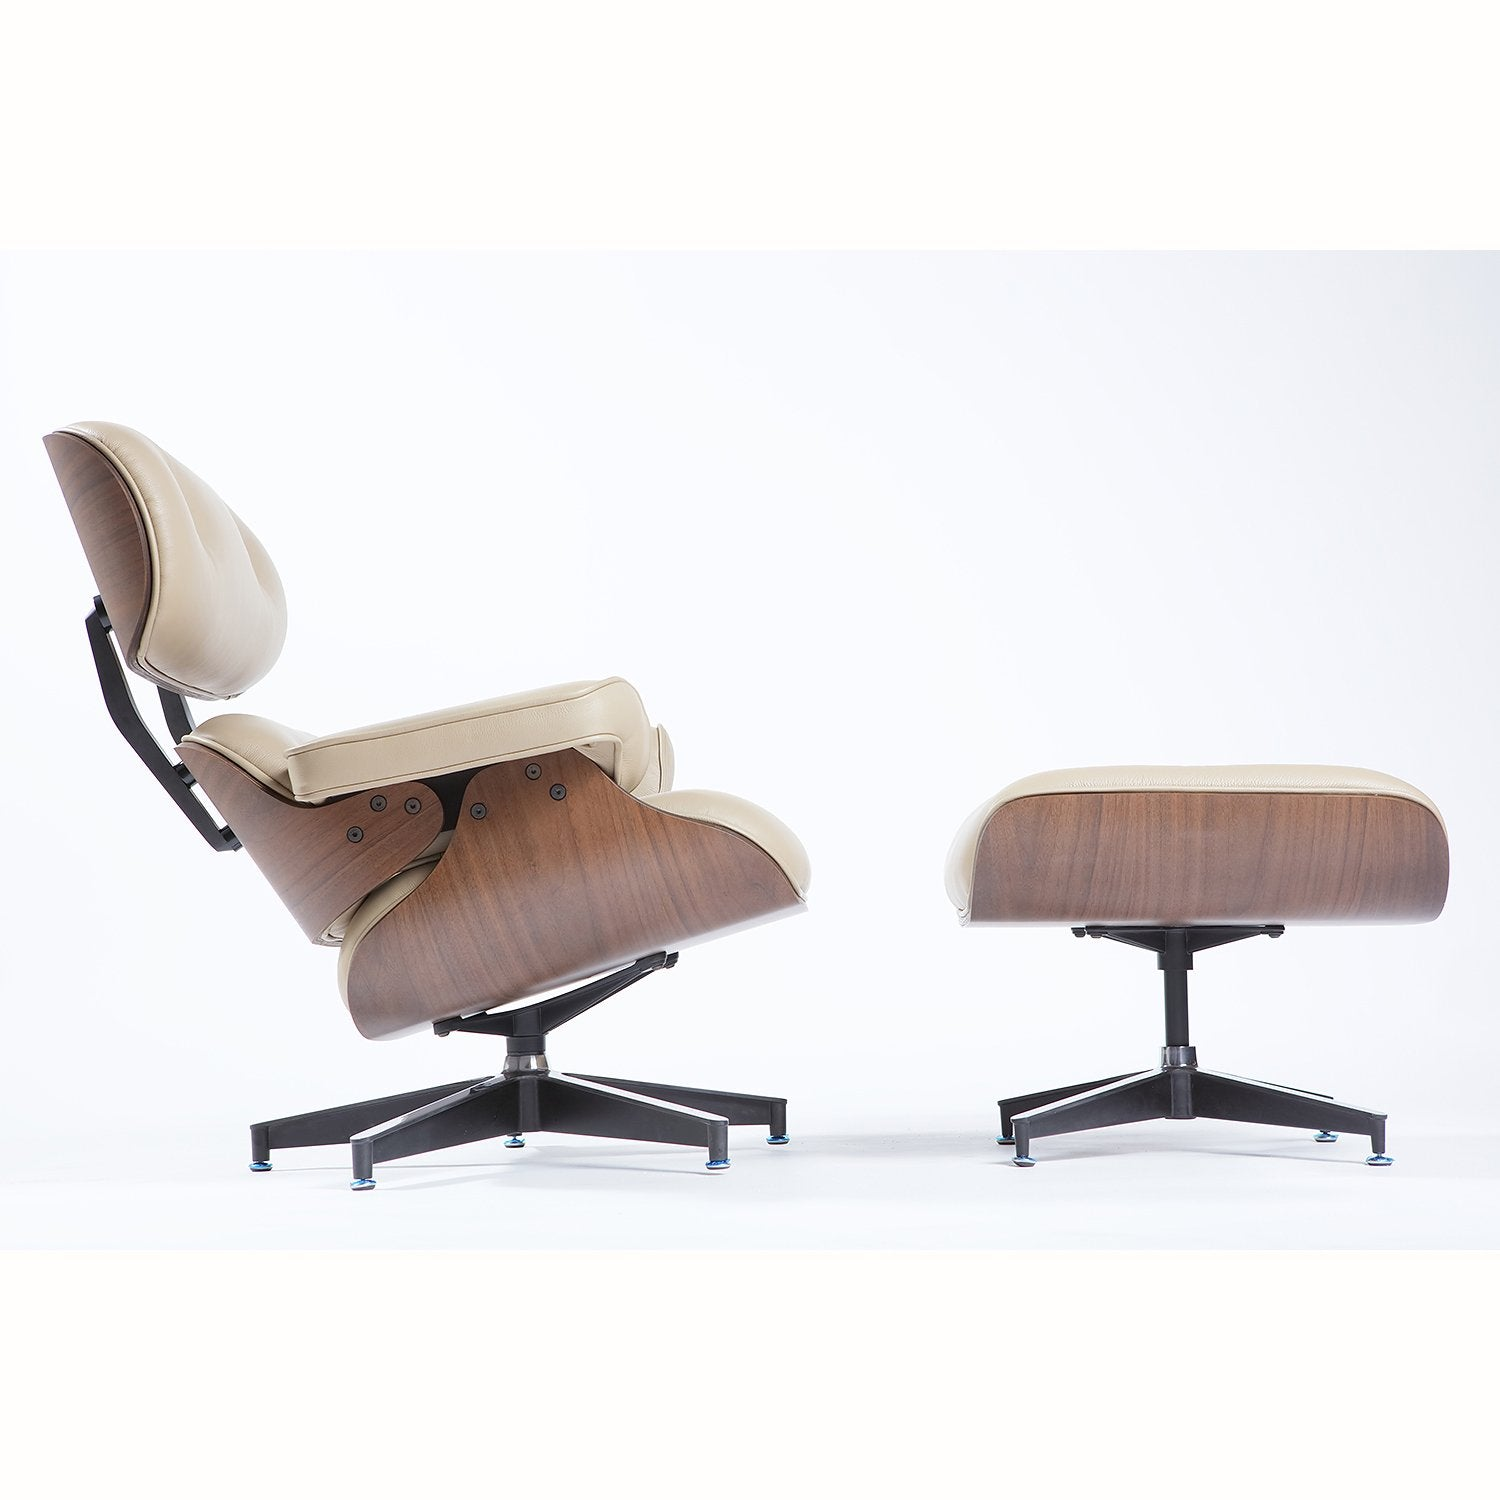 Charles Eames Lounge Chair - Sand Natural Leather